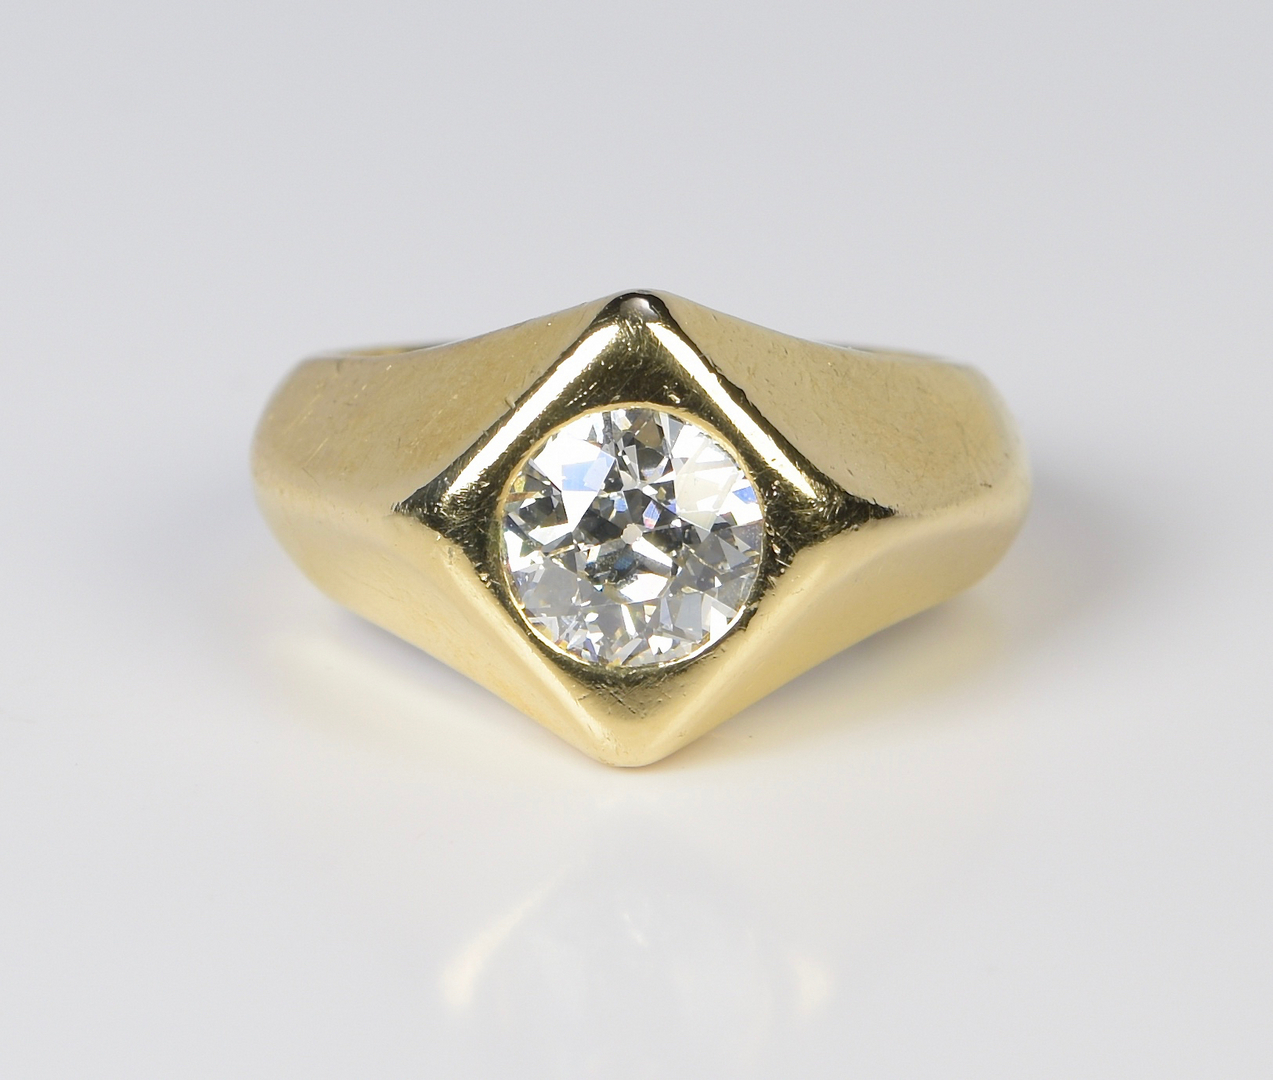 Lot 398 Gent S 14k 1 57 Ct Oec Diamond Ring